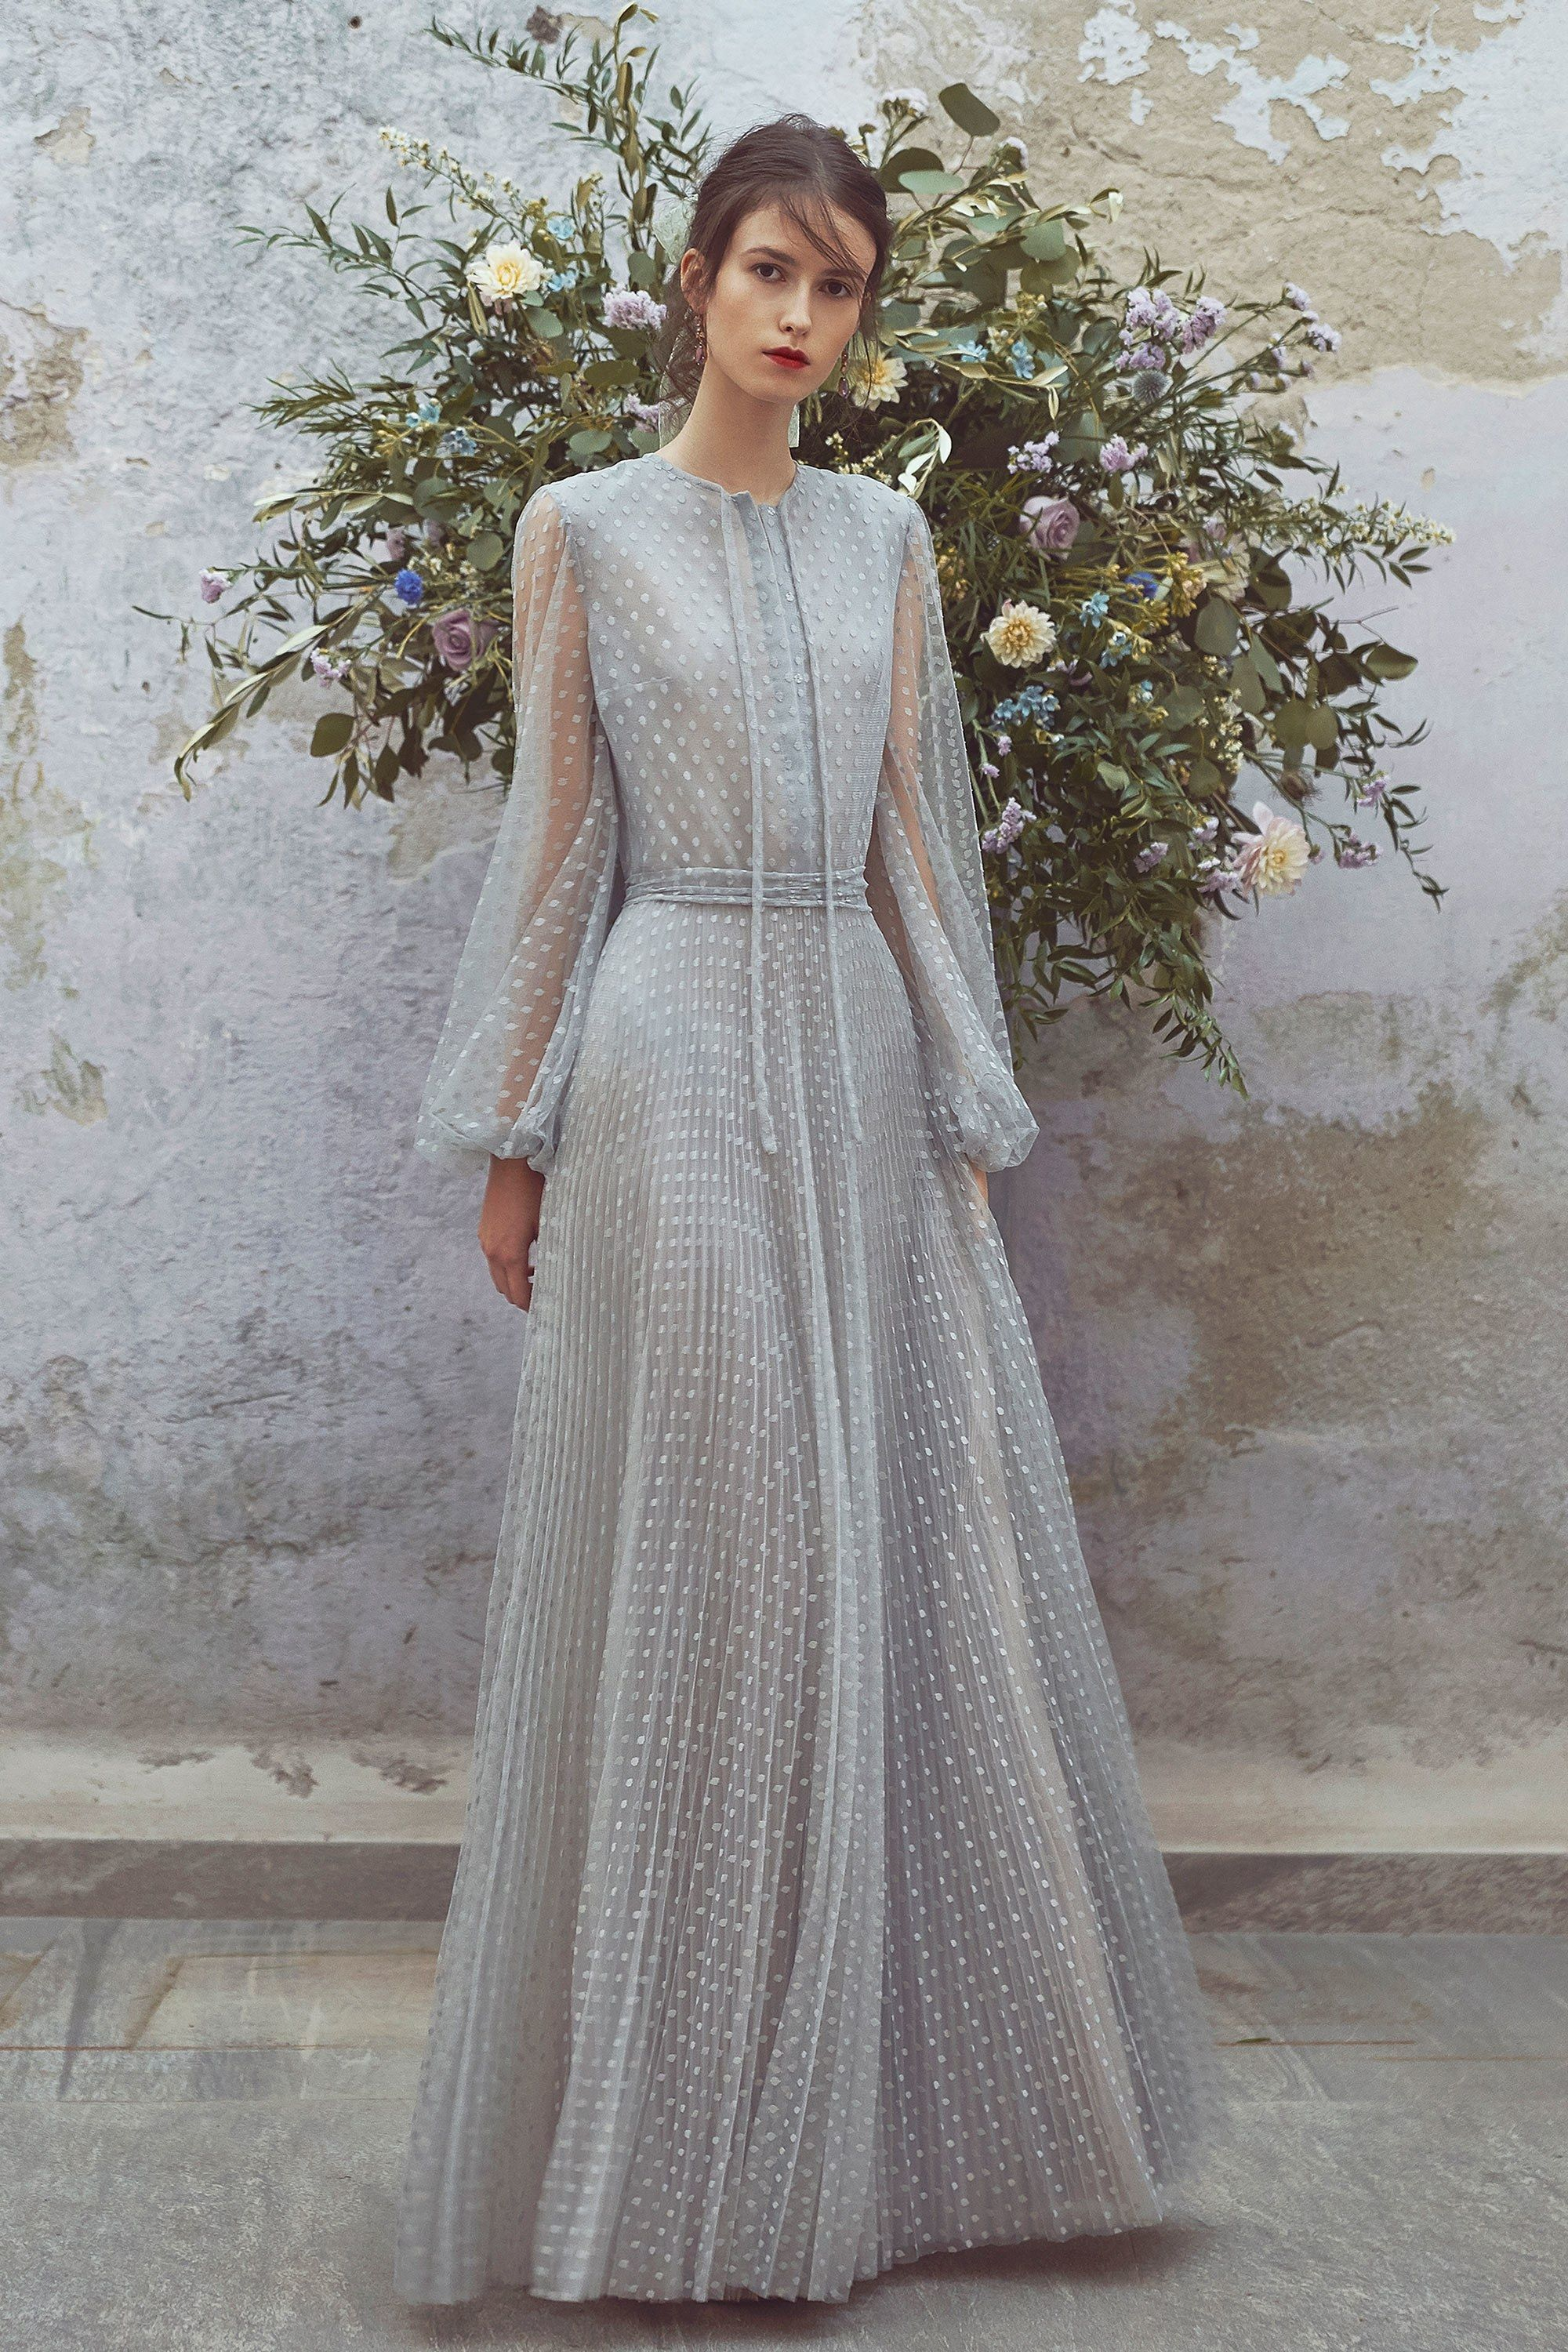 Luisa Beccaria Resort 2018 Collection Photos Vogue Tap The Link Now To See Our Super Of Accessories Made Just For You